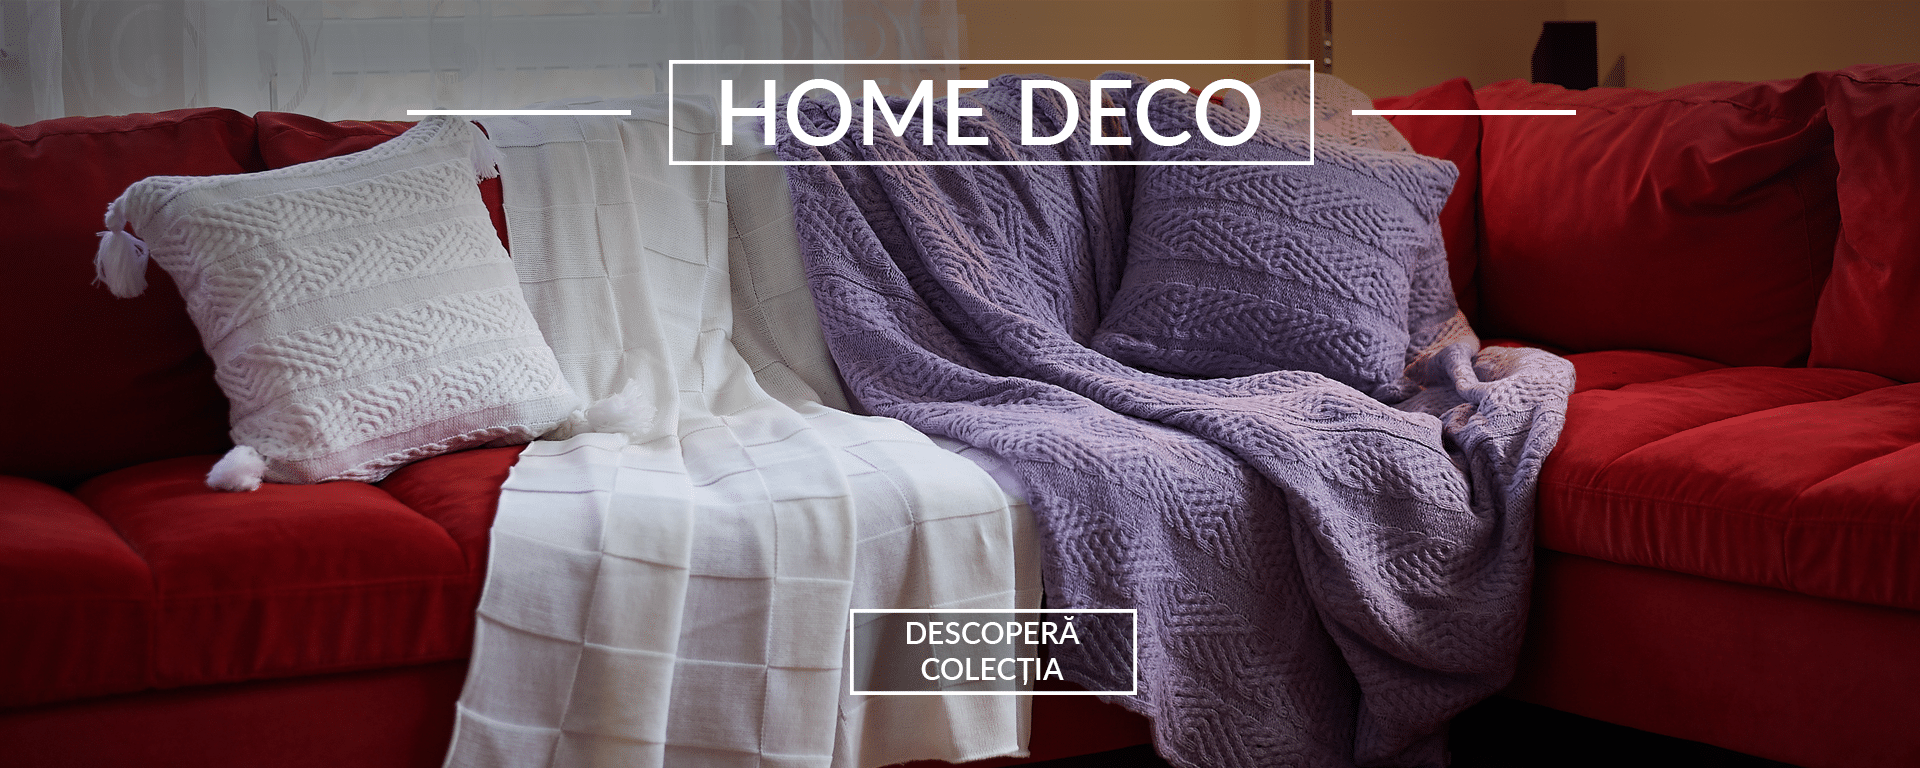 Banner Home Deco site